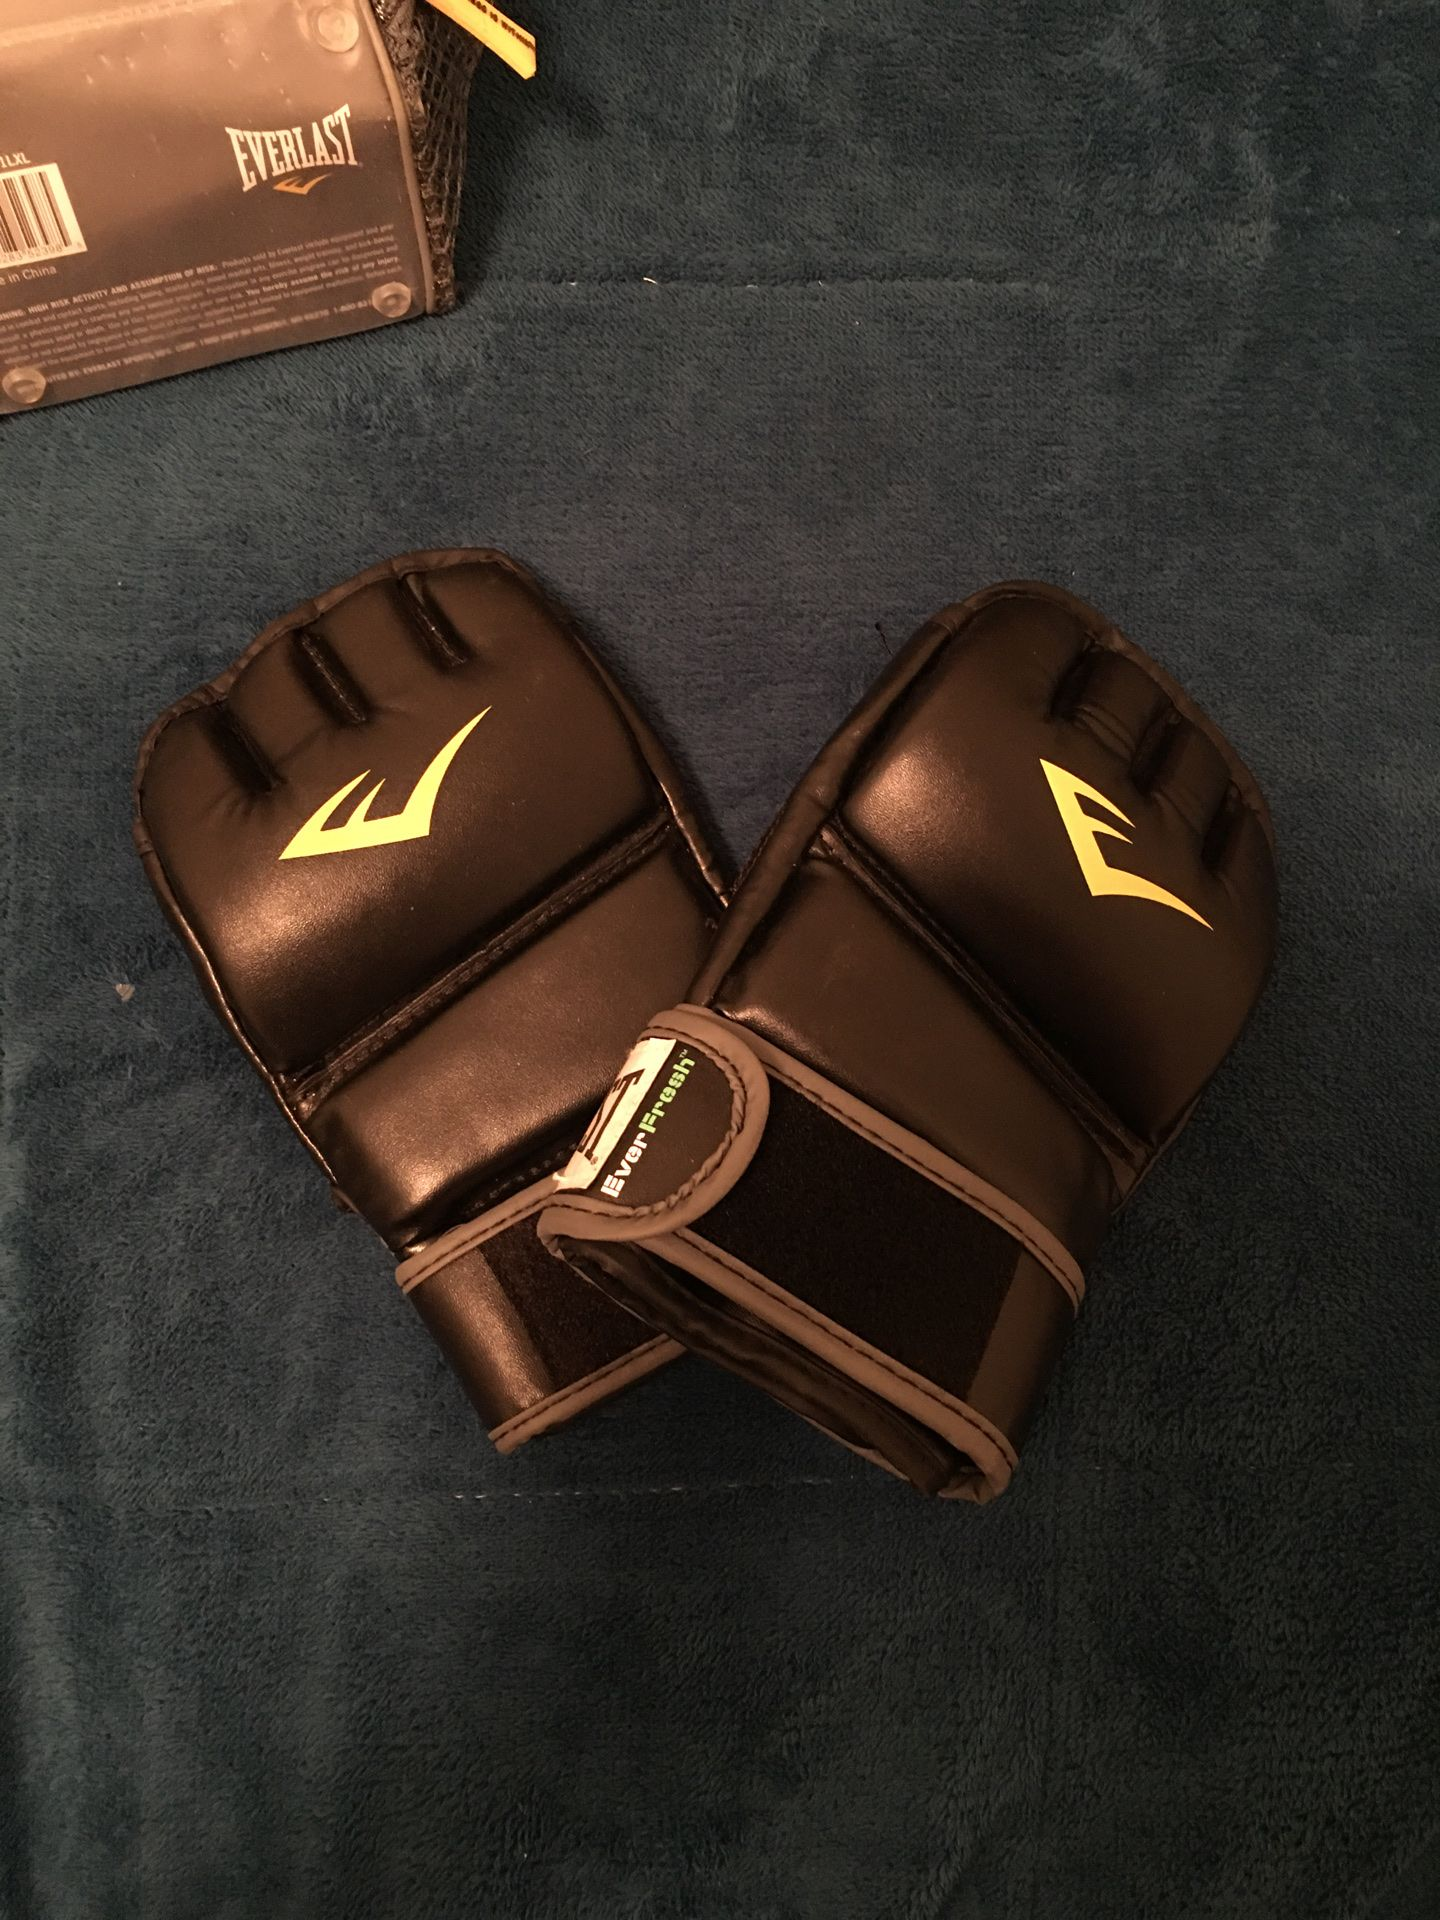 EVERLAST UFC GLOVES. COMES WITH BAG